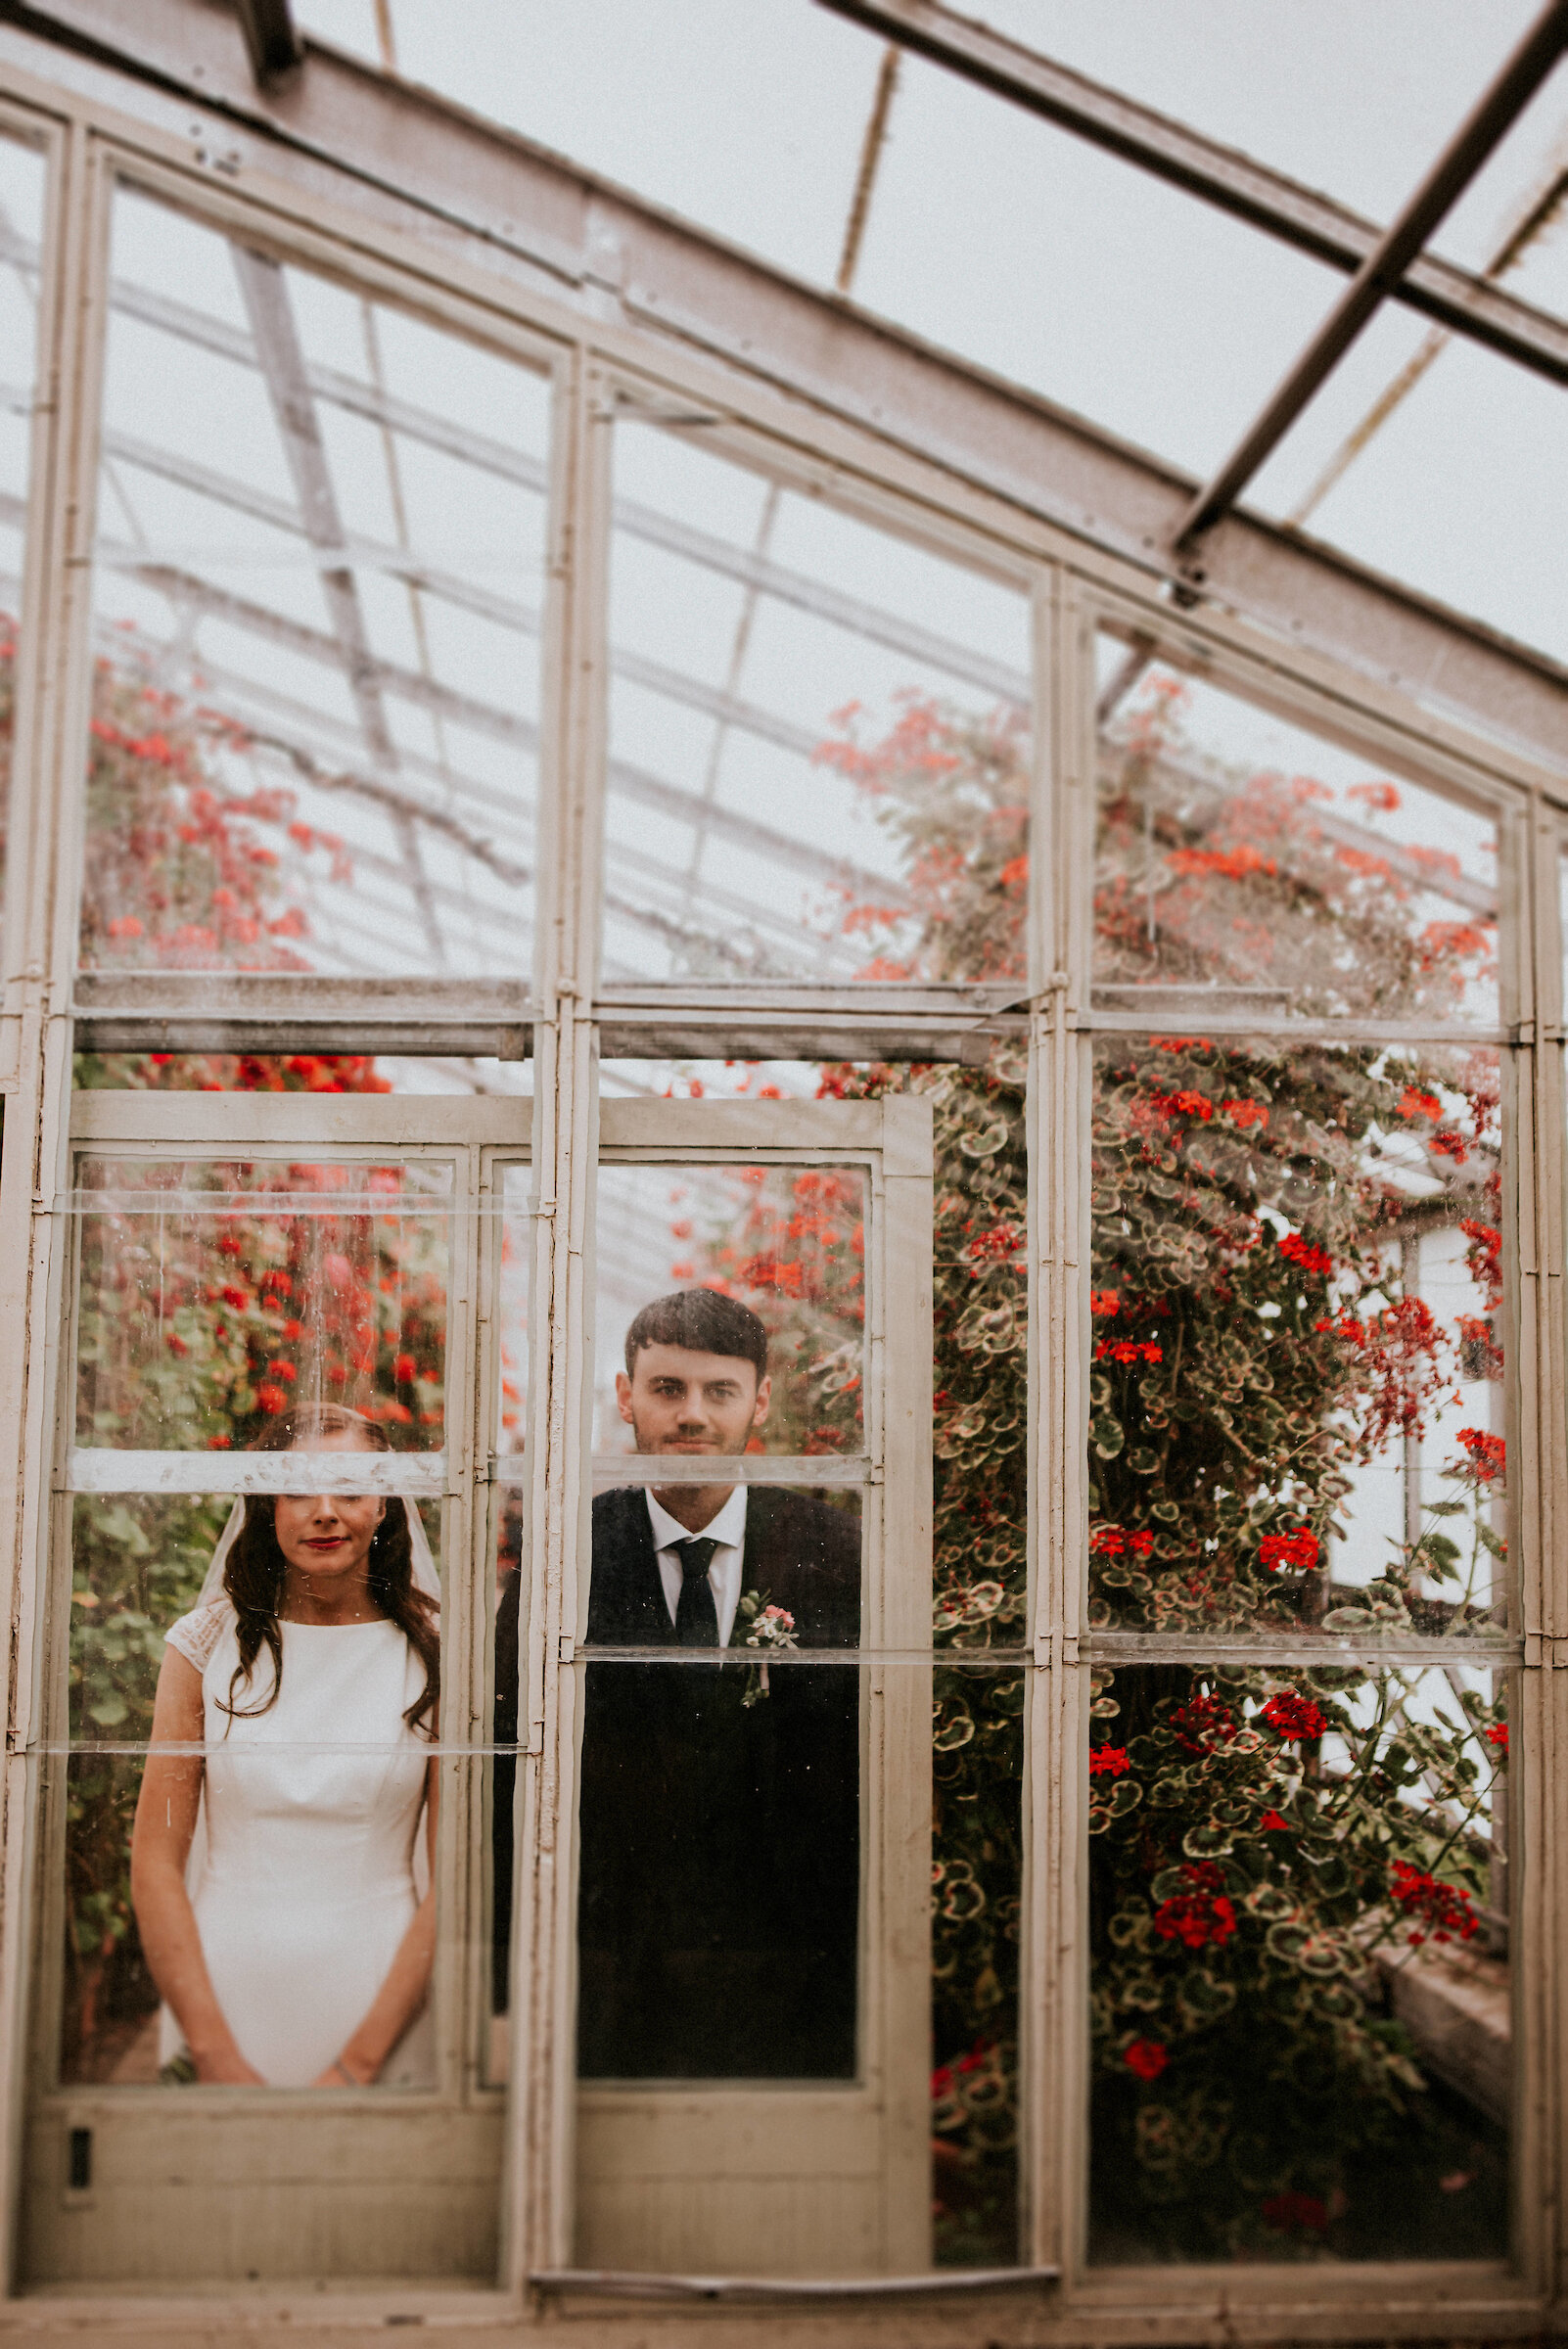 The spectacular grandeur of Temple Newsham House mixed with Summer in full bloom amidst the walled garden marquee in this beautiful Leeds wedding with Andy & Chloe.